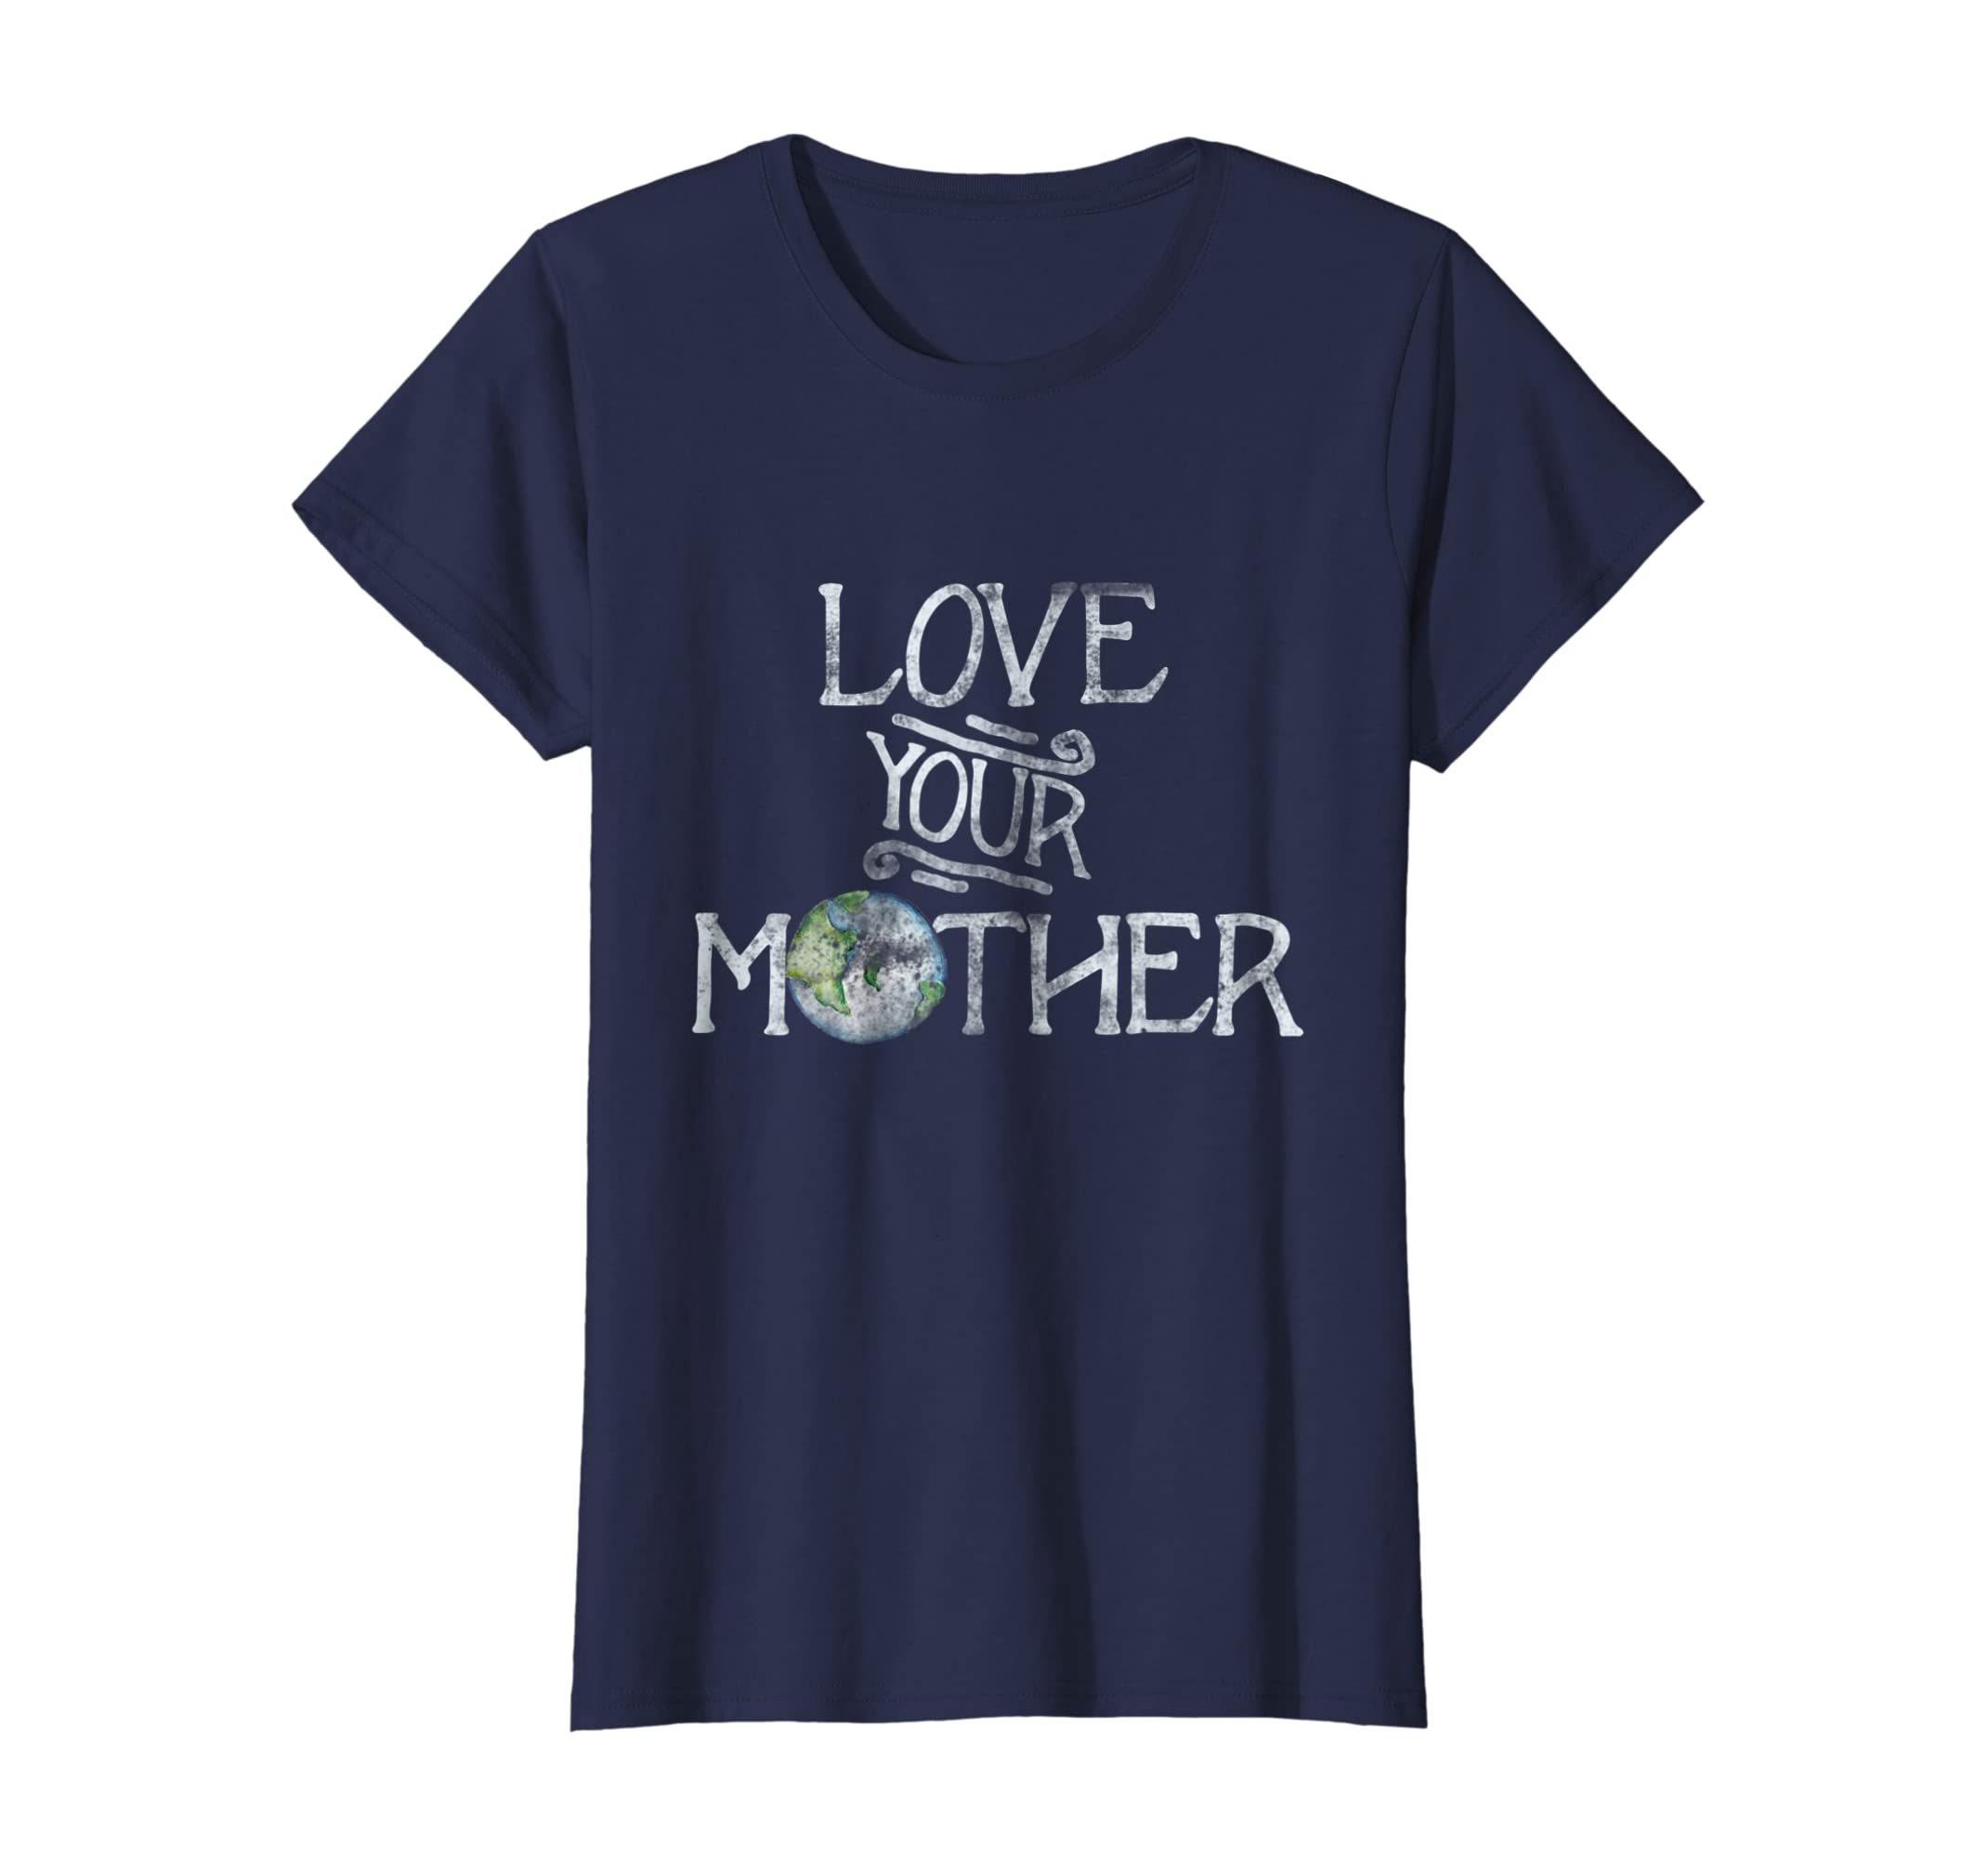 876f4bdaa Amazon.com: Love your mother earth t-shirt vintage style earth day tee:  Clothing